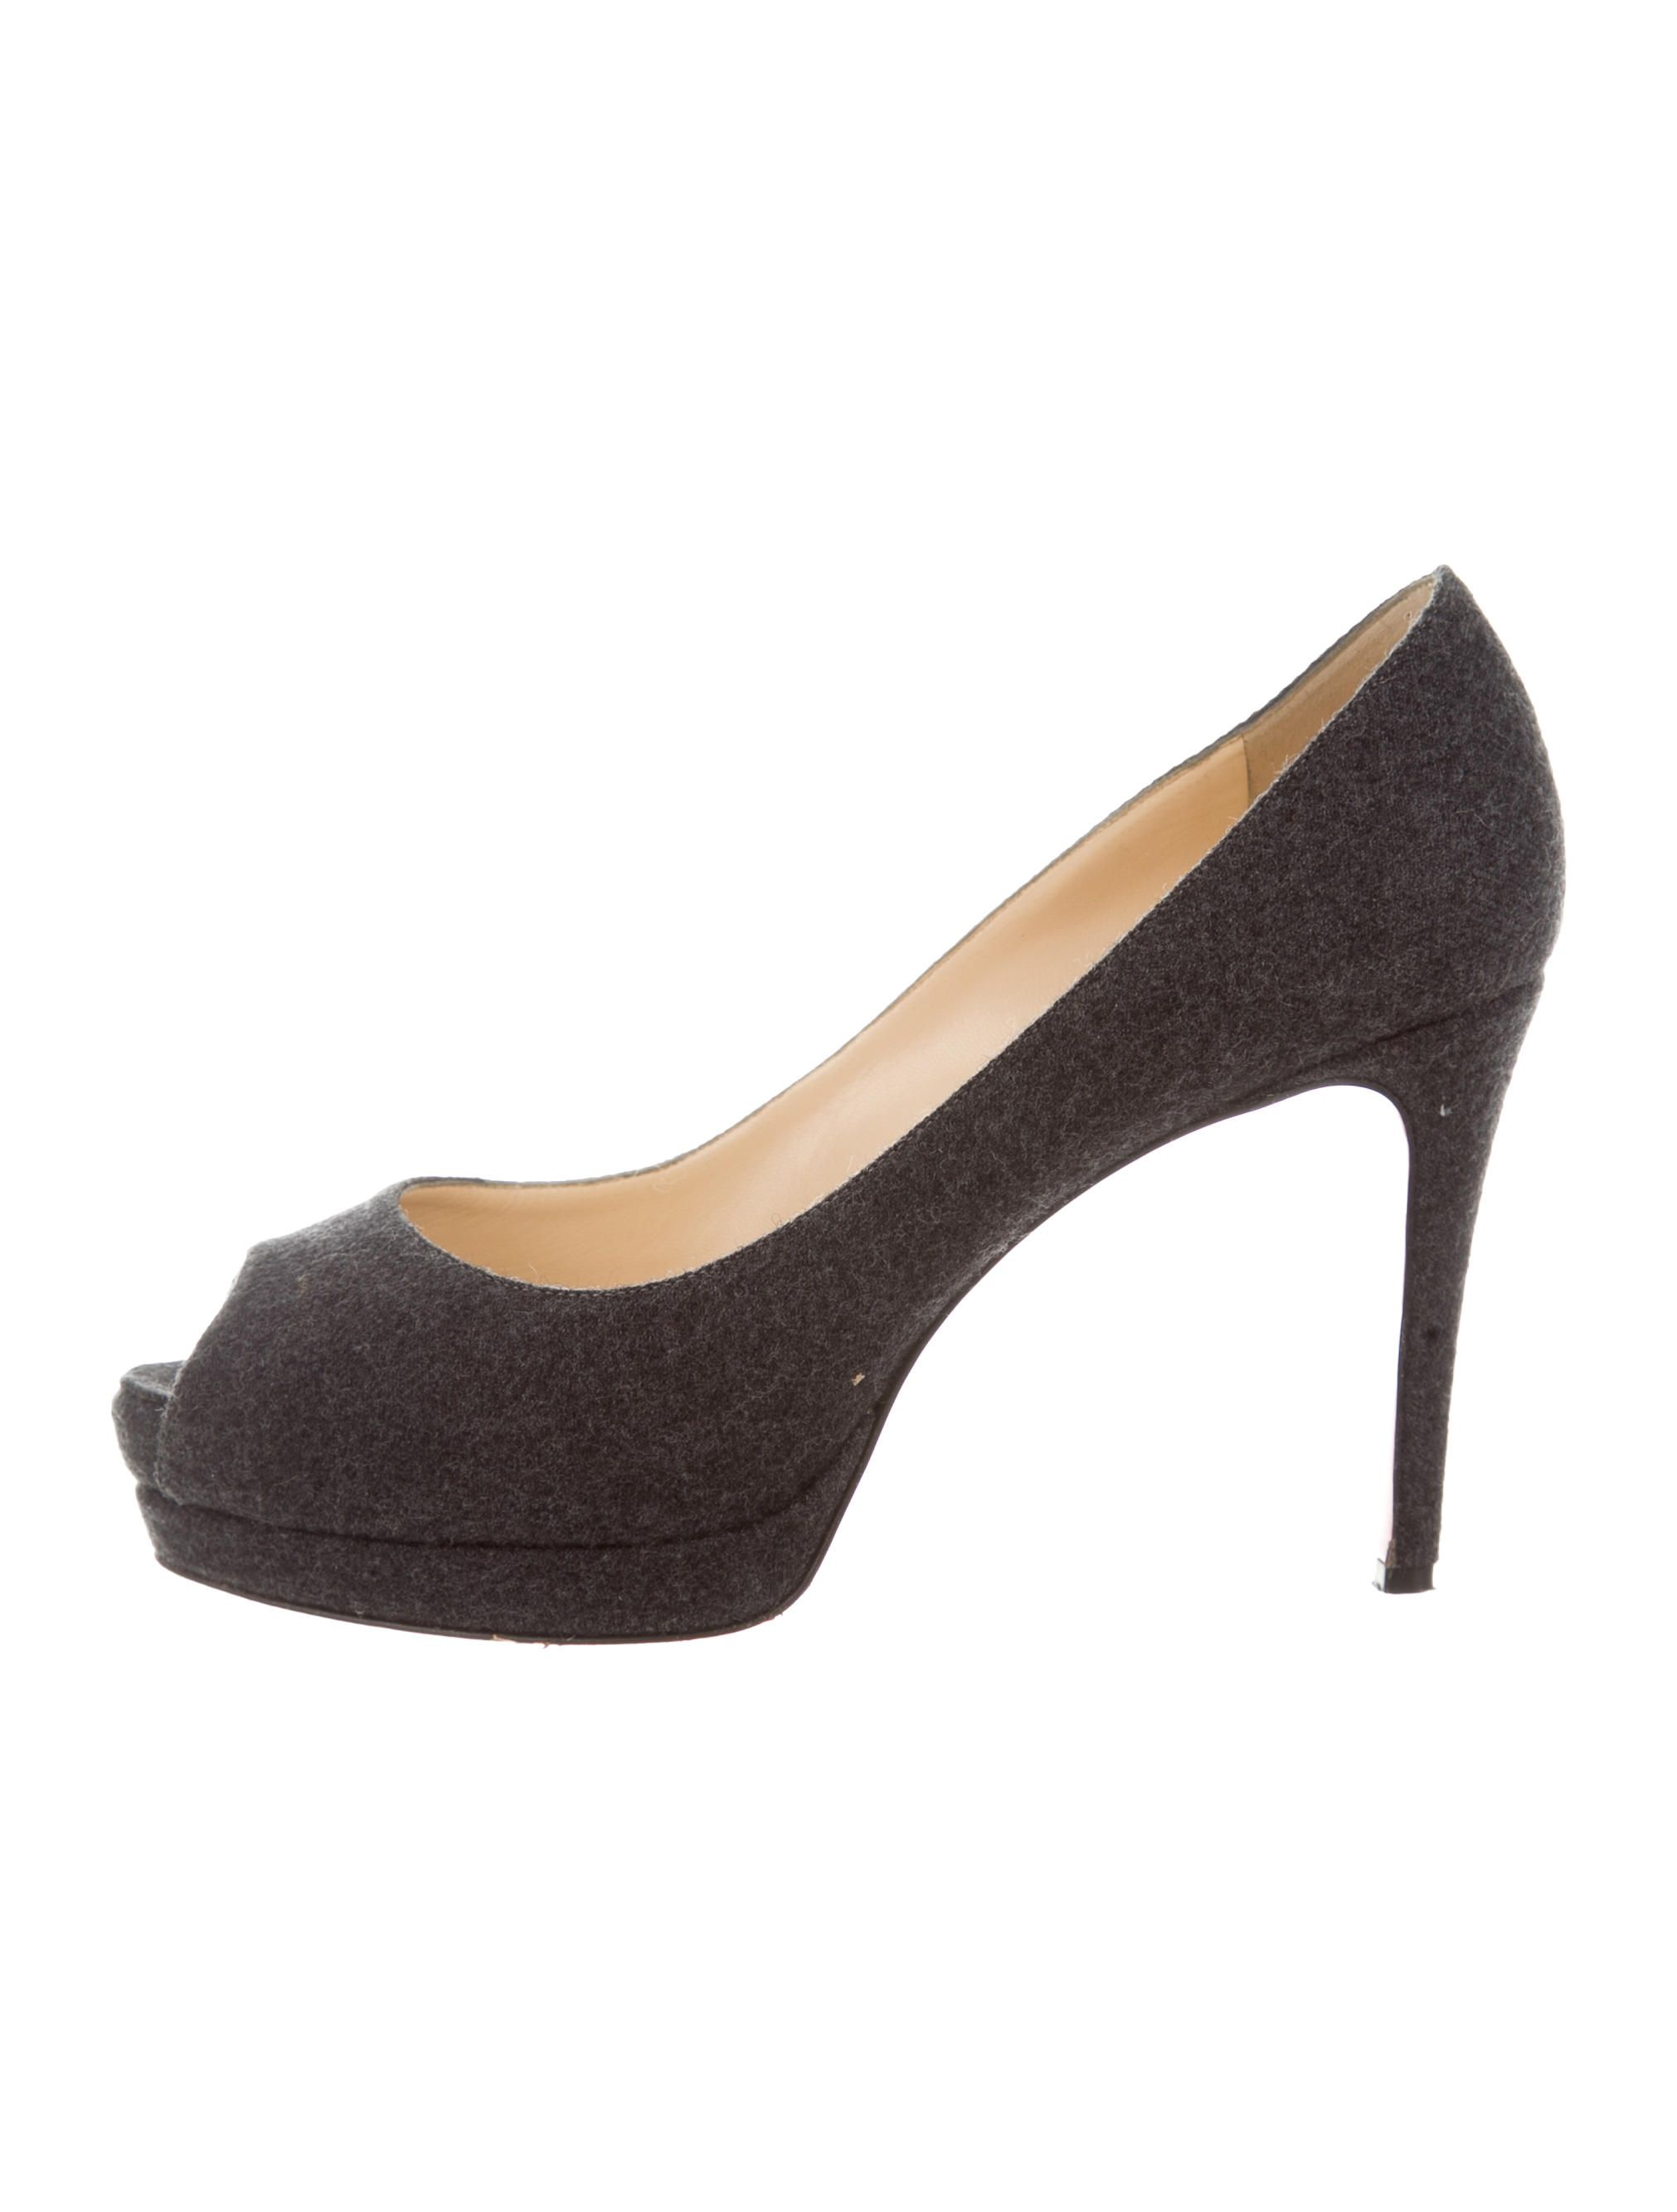 5f7d4e574fe0 Grey felt Christian Louboutin peep-toe pumps with semi concealed platforms  and covered heels.